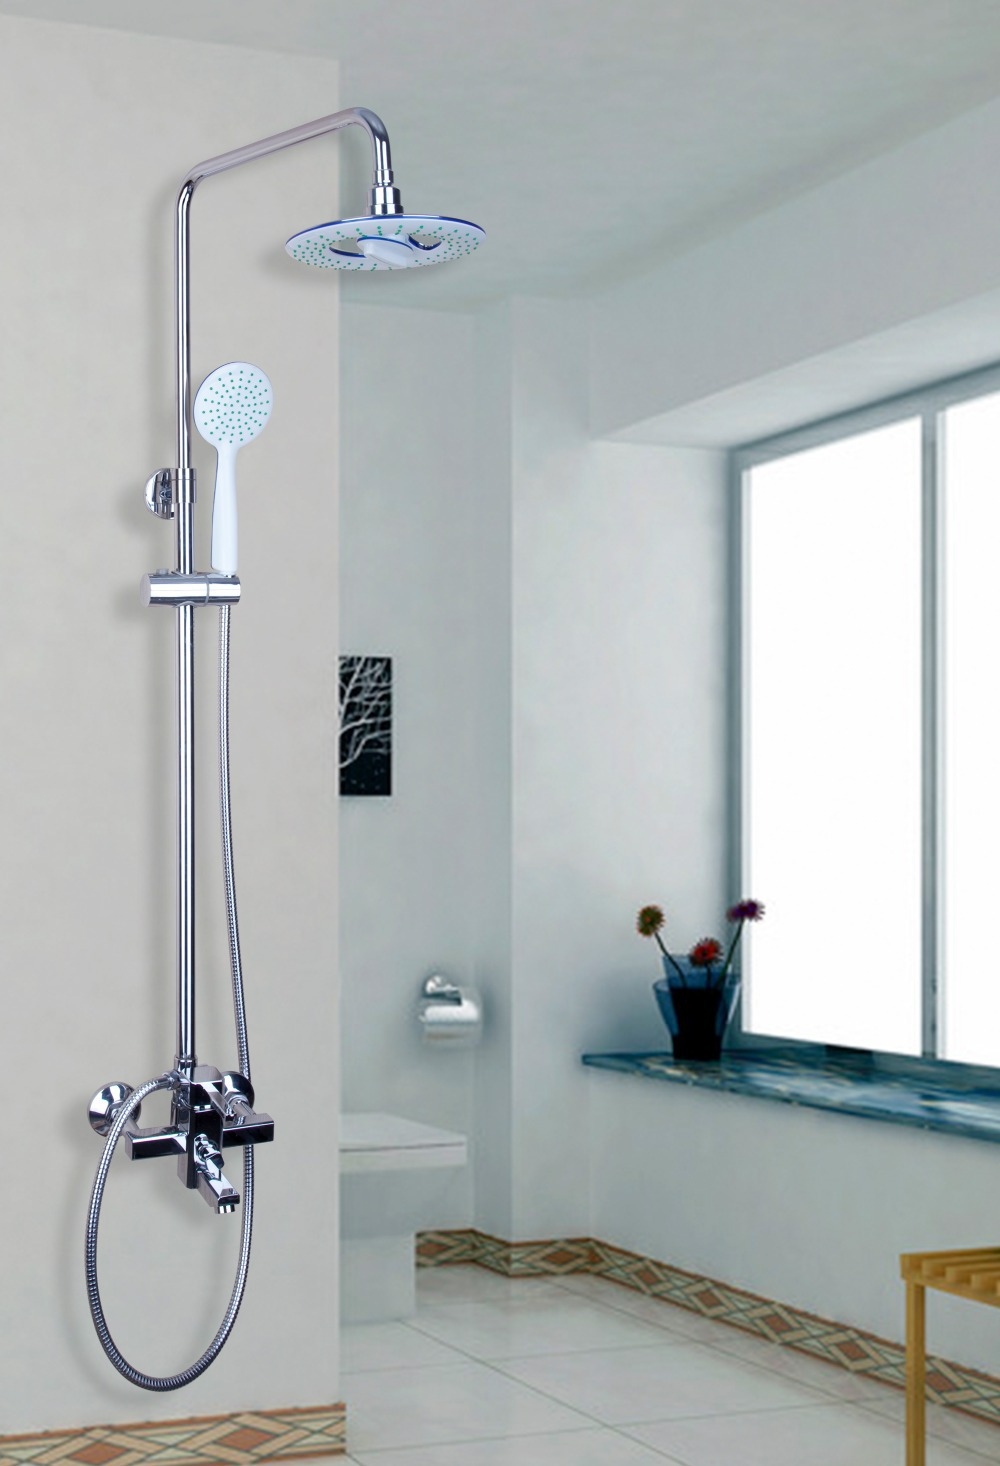 YANKSMART Bathroom 8 Inch Shower Head Rainfall Shower Faucet Wall ...